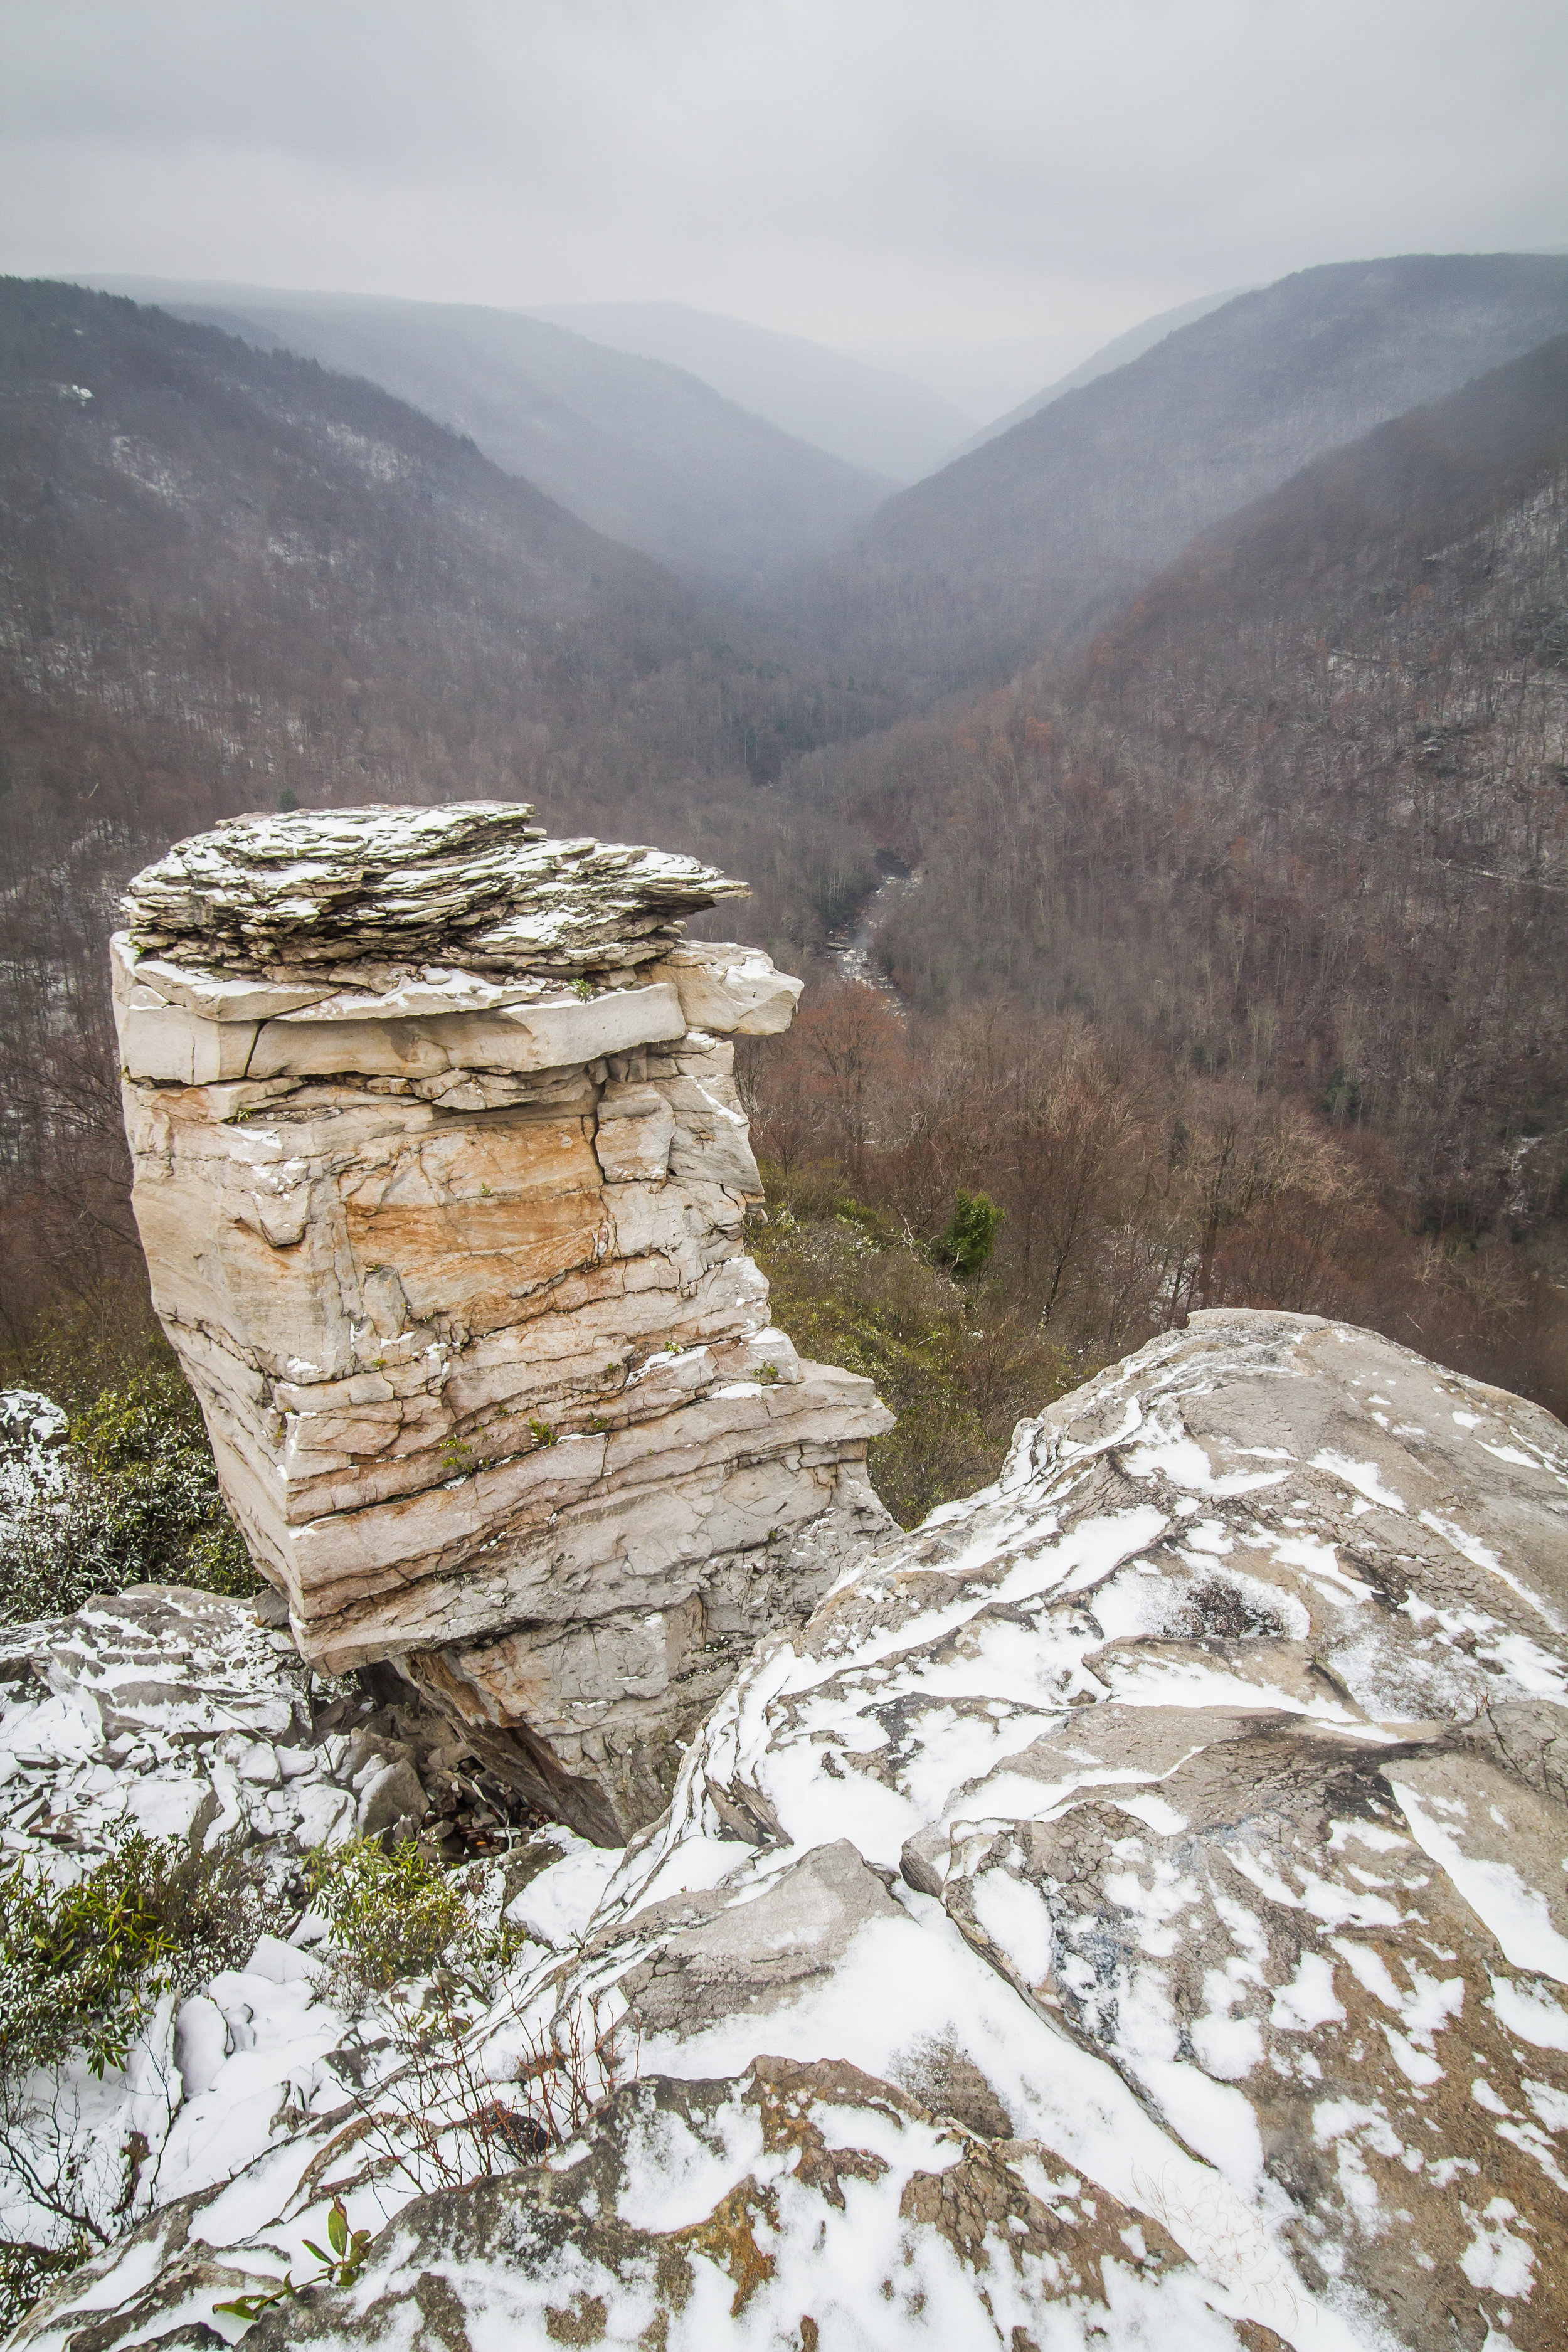 Lindy Point overlook - or windy point, West Virginia